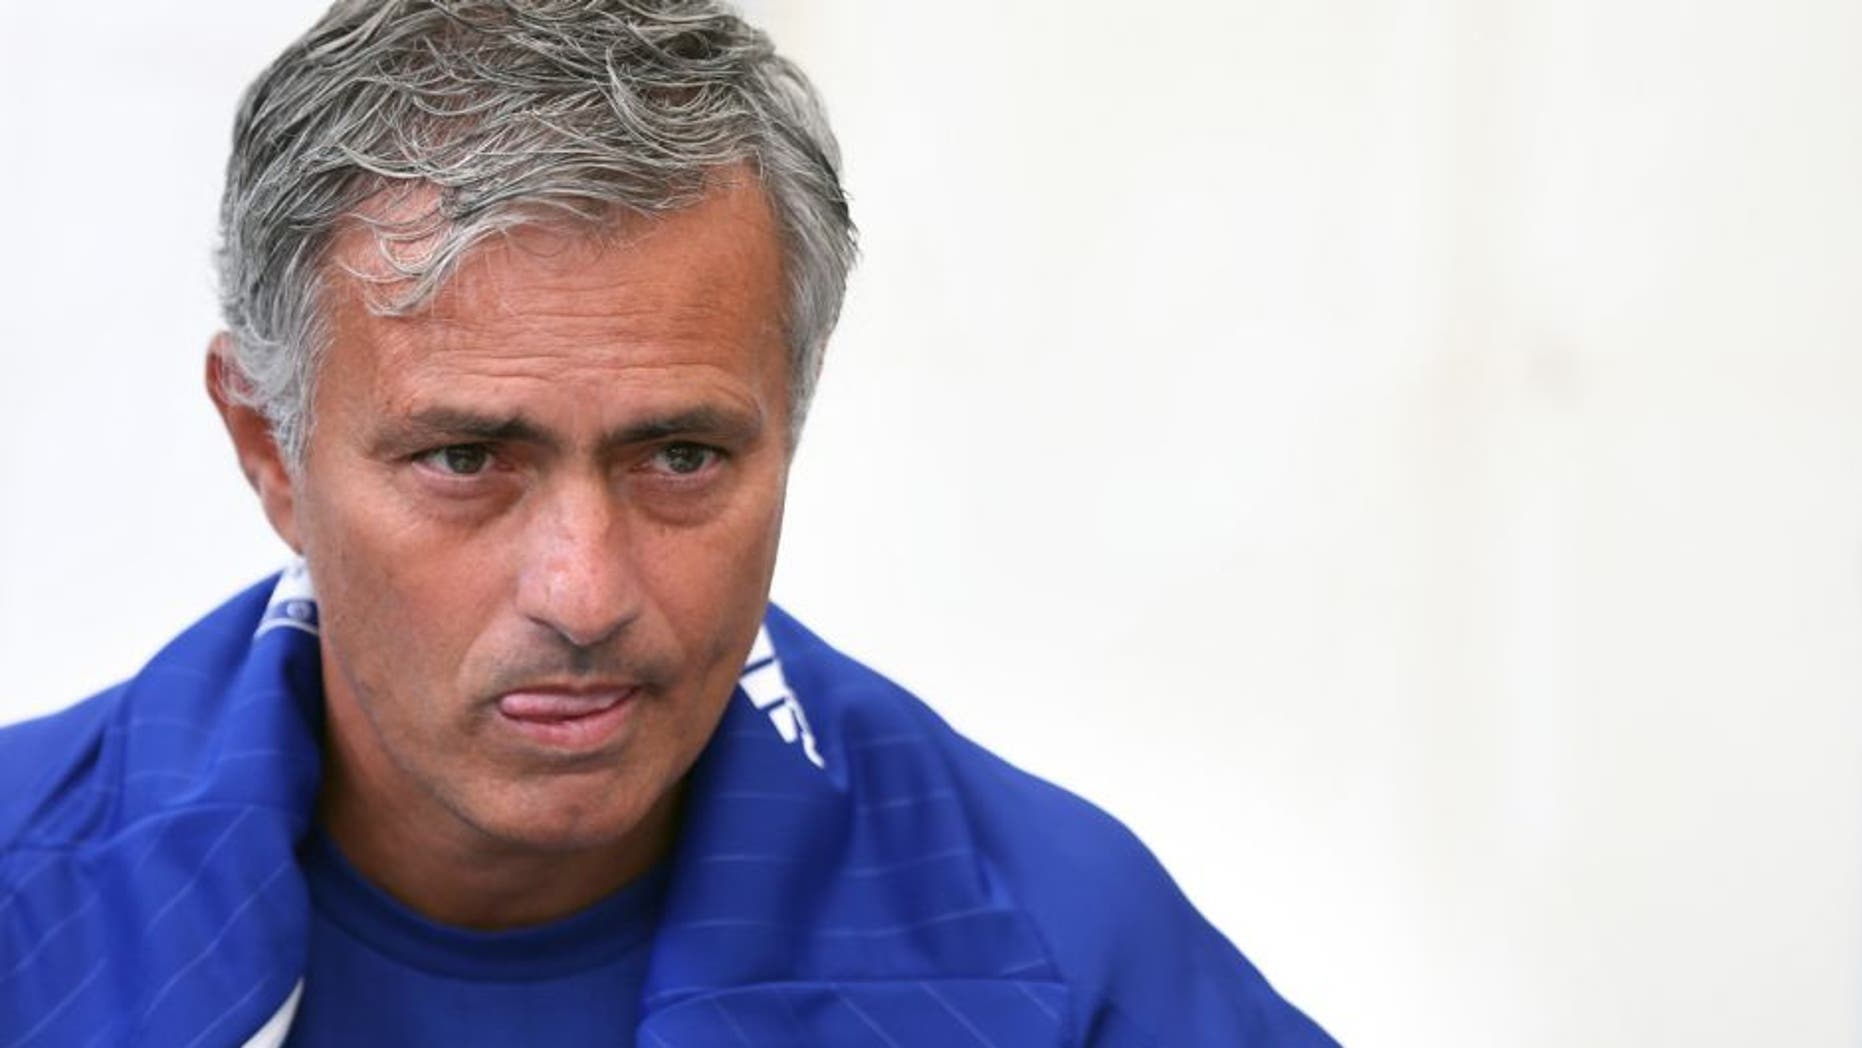 LONDON, ENGLAND - AUGUST 05: Chelsea FC manager Jose Mourinho talks to members of the media during the official Premier League season launch media event at Southfields Academy on August 5, 2015 in London, England. (Photo by Steve Bardens/Getty Images)